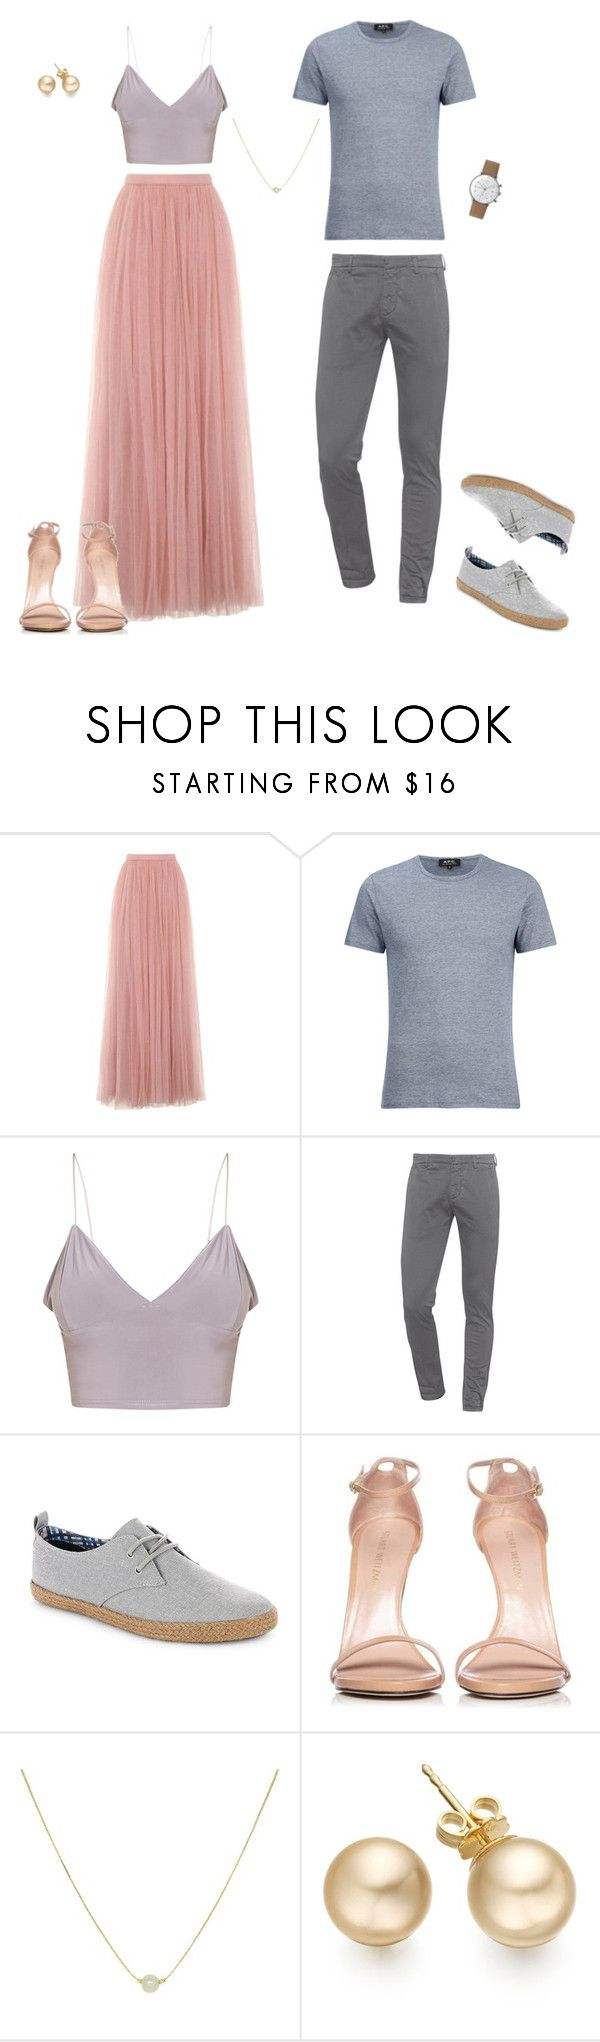 What to wear for summer engagement pictures by Erica Sofet Photography on Polyvore featuring Little Mistress, Stuart Weitzman, Dondup, A.P.C., Ben Sherman and Junghans